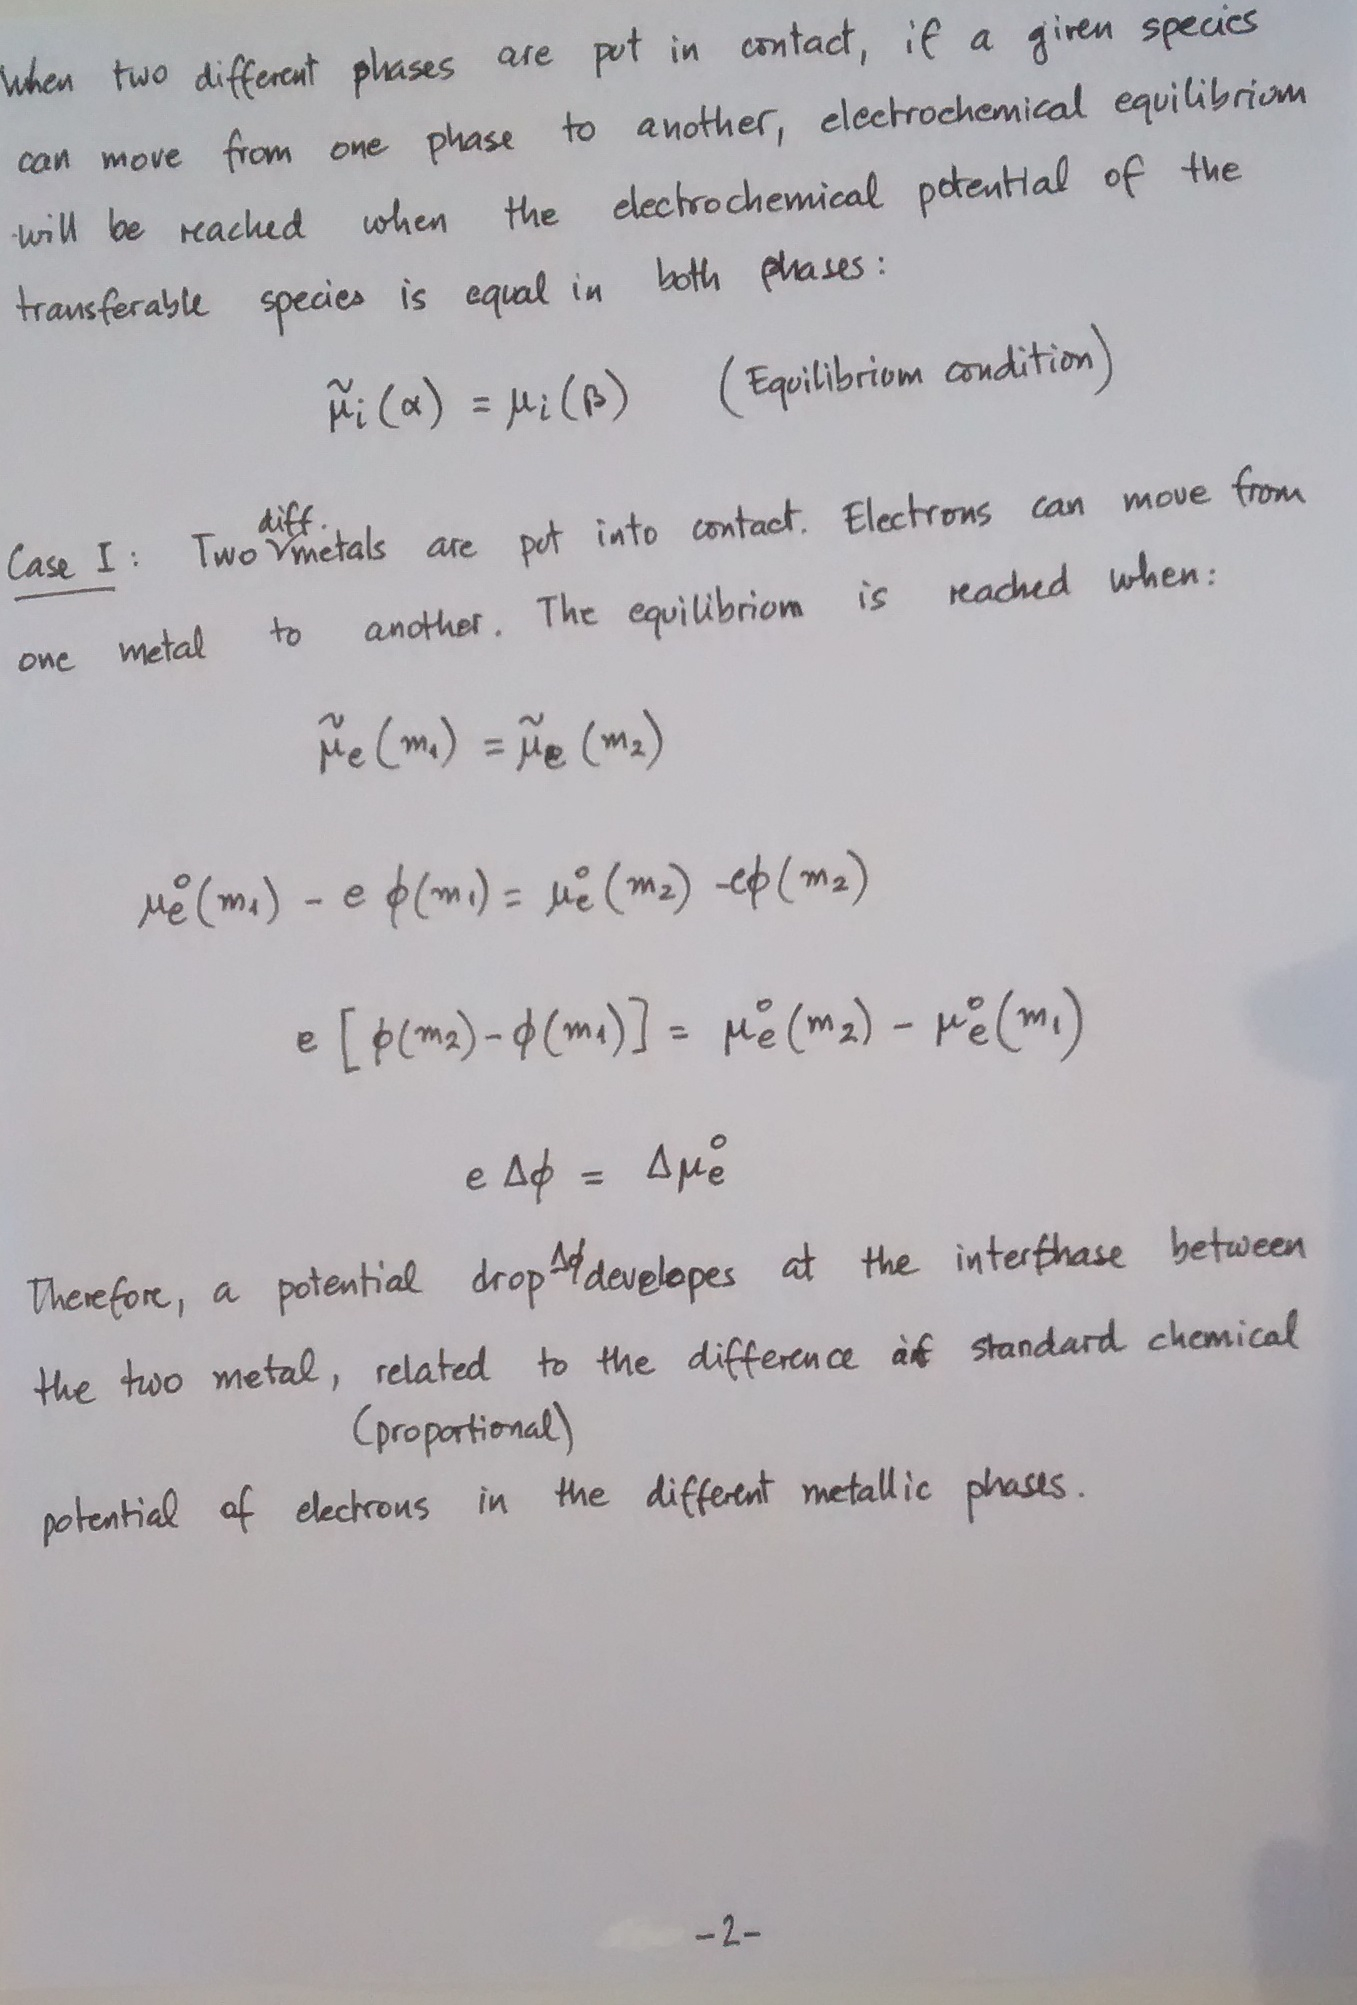 What Do You Understand By The Signs On The Electrode Potentials As Used In Electrochemistry